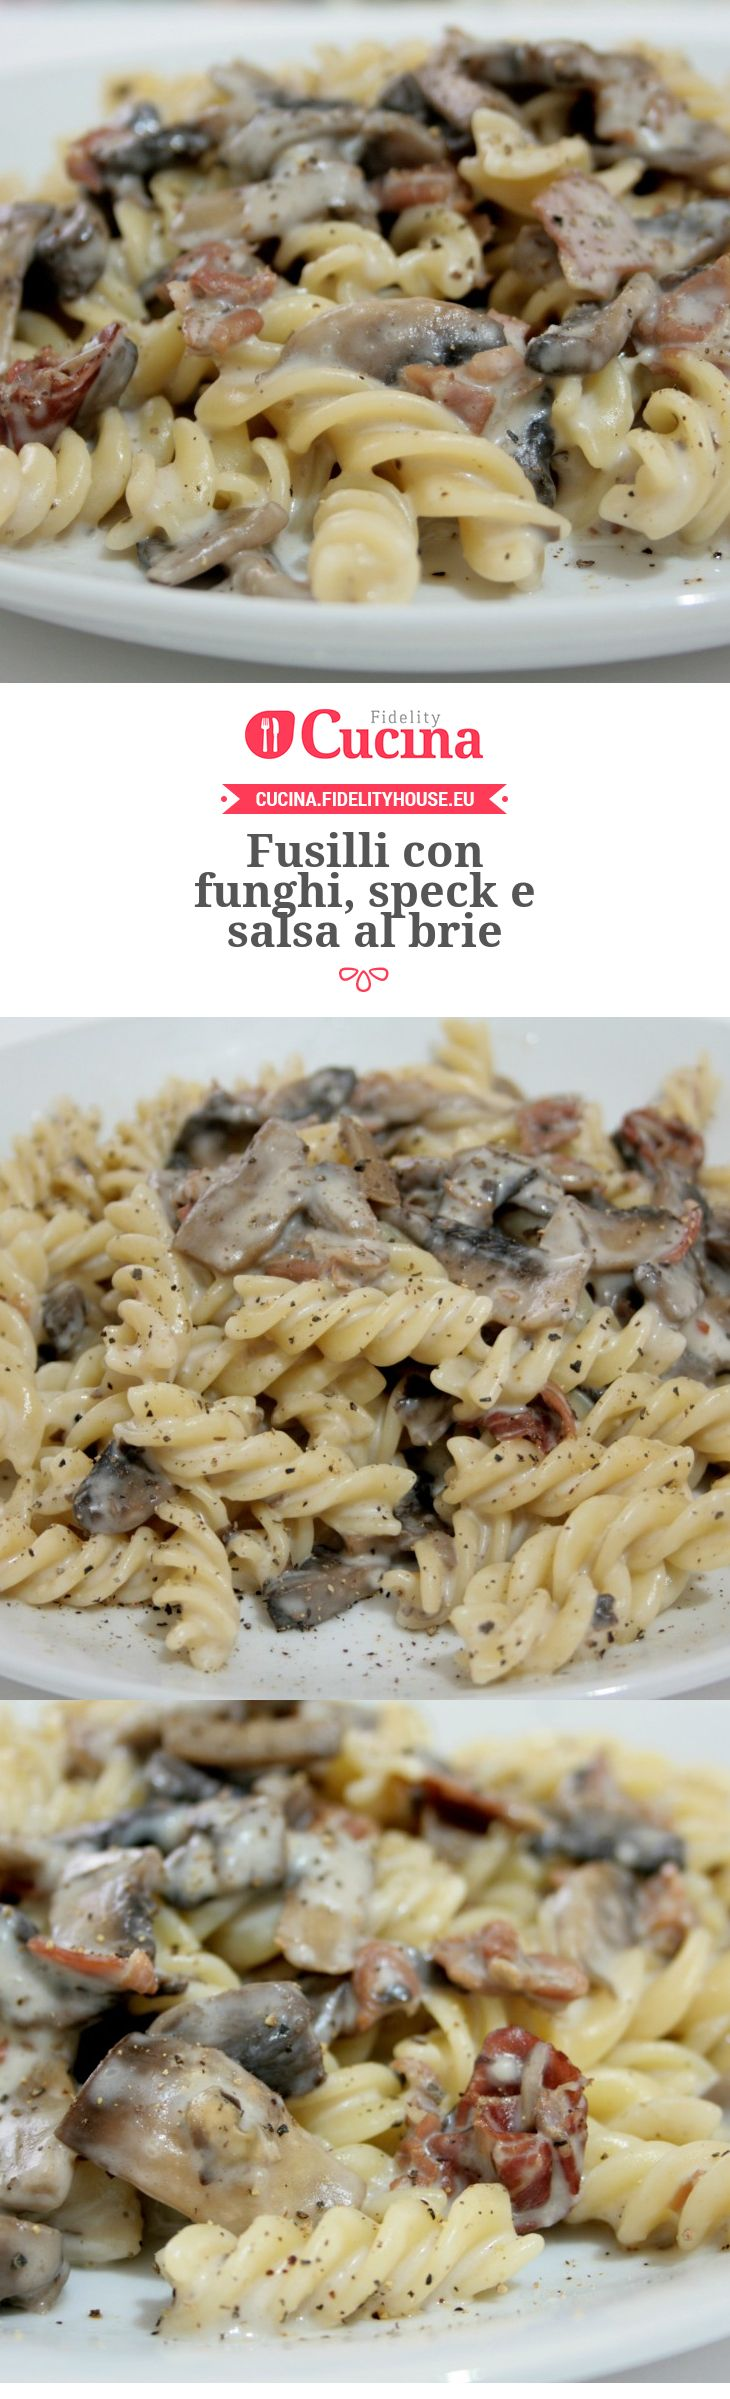 fusilli with mushrooms, bacon and brie sauce is a dish with a strong and intense flavor